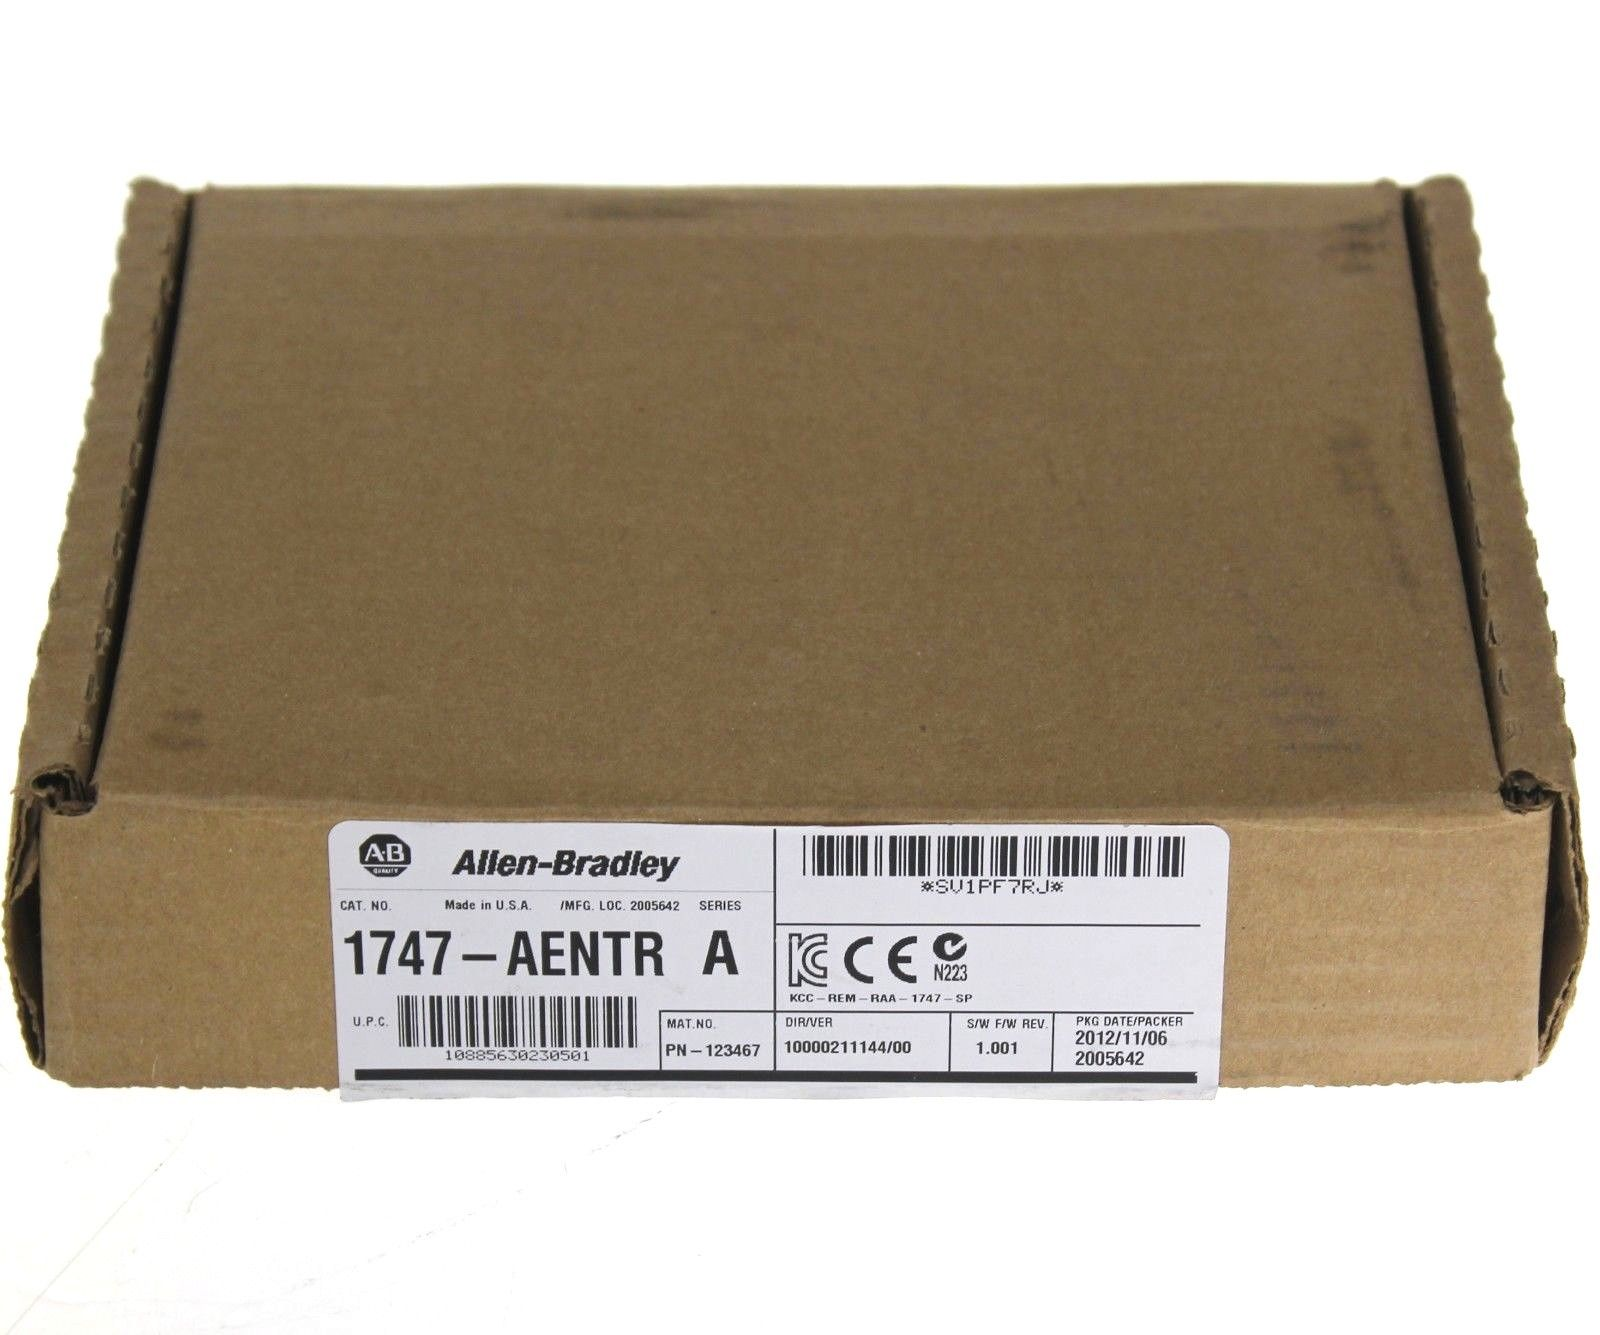 New Allen Bradley 1747-AENTR SLC 500 EtherNet/IP Adapter Series A Fr. 1.001